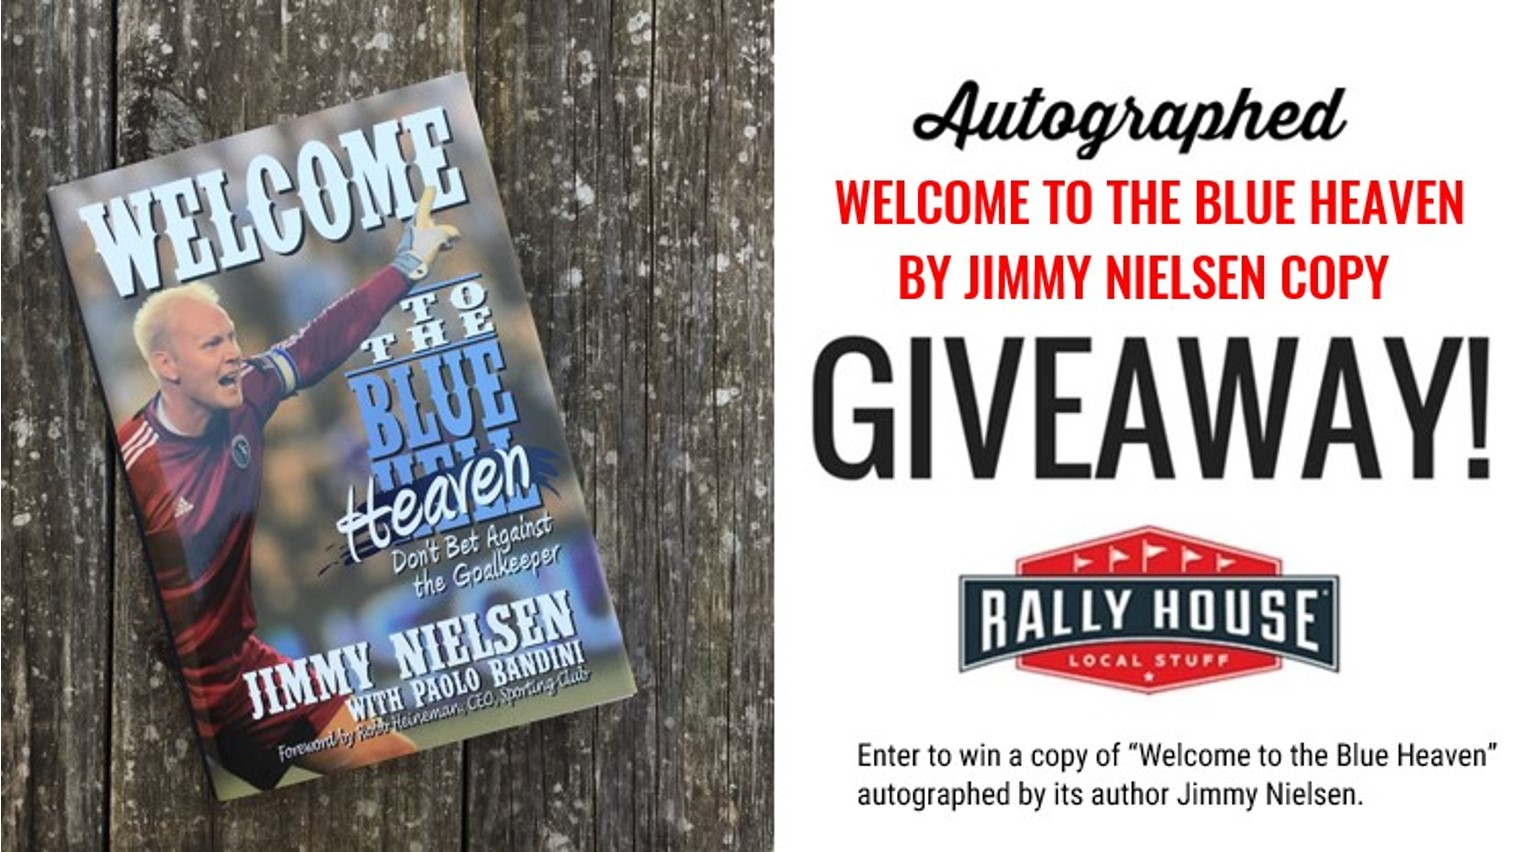 Win an autographed copy of 'Welcome to the Blue Heaven'